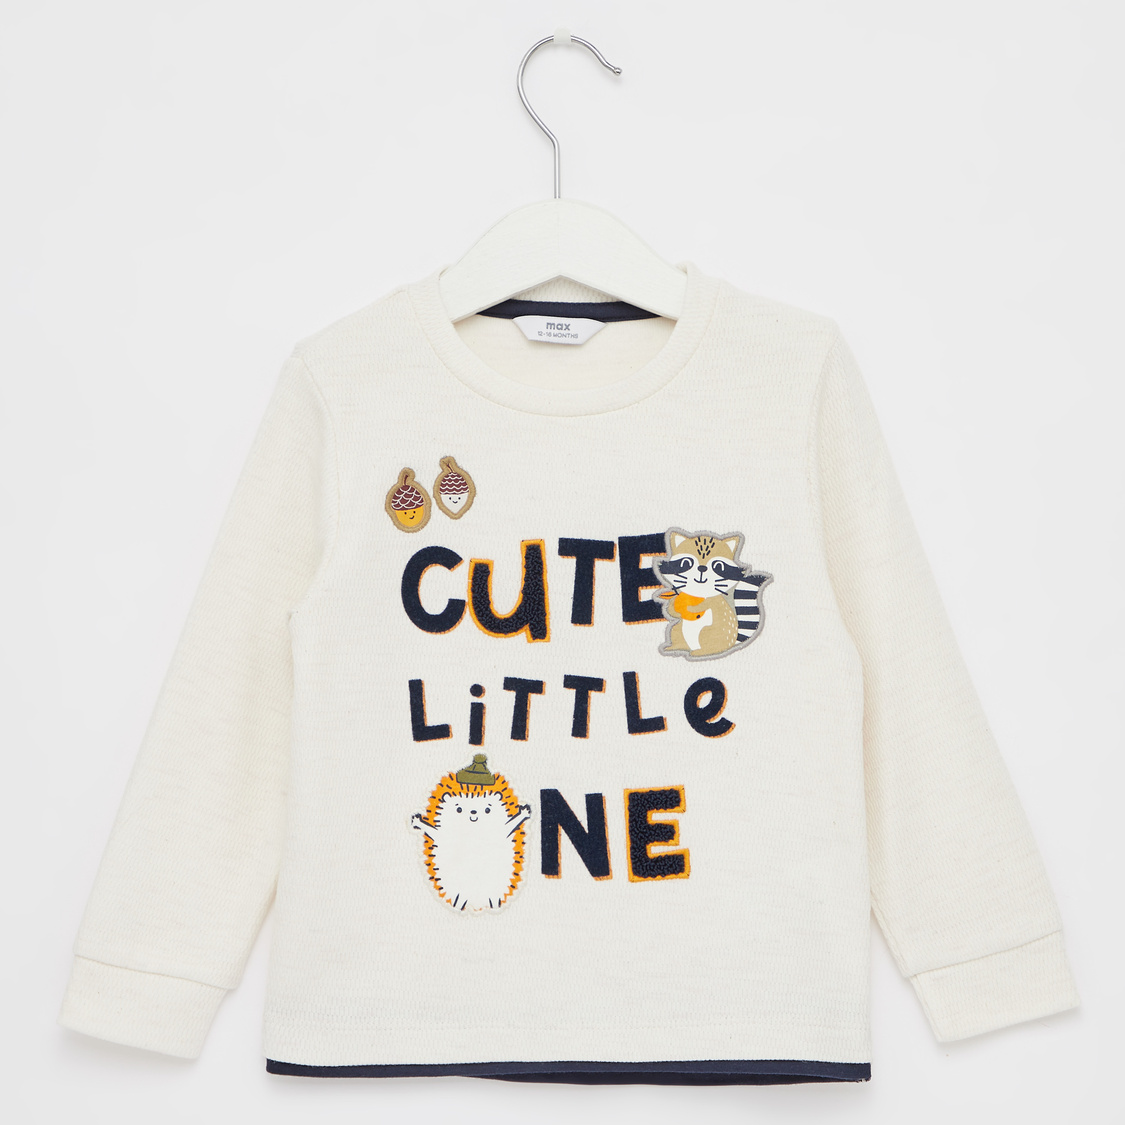 Slogan Print T-shirt with Long Sleeves and Applique